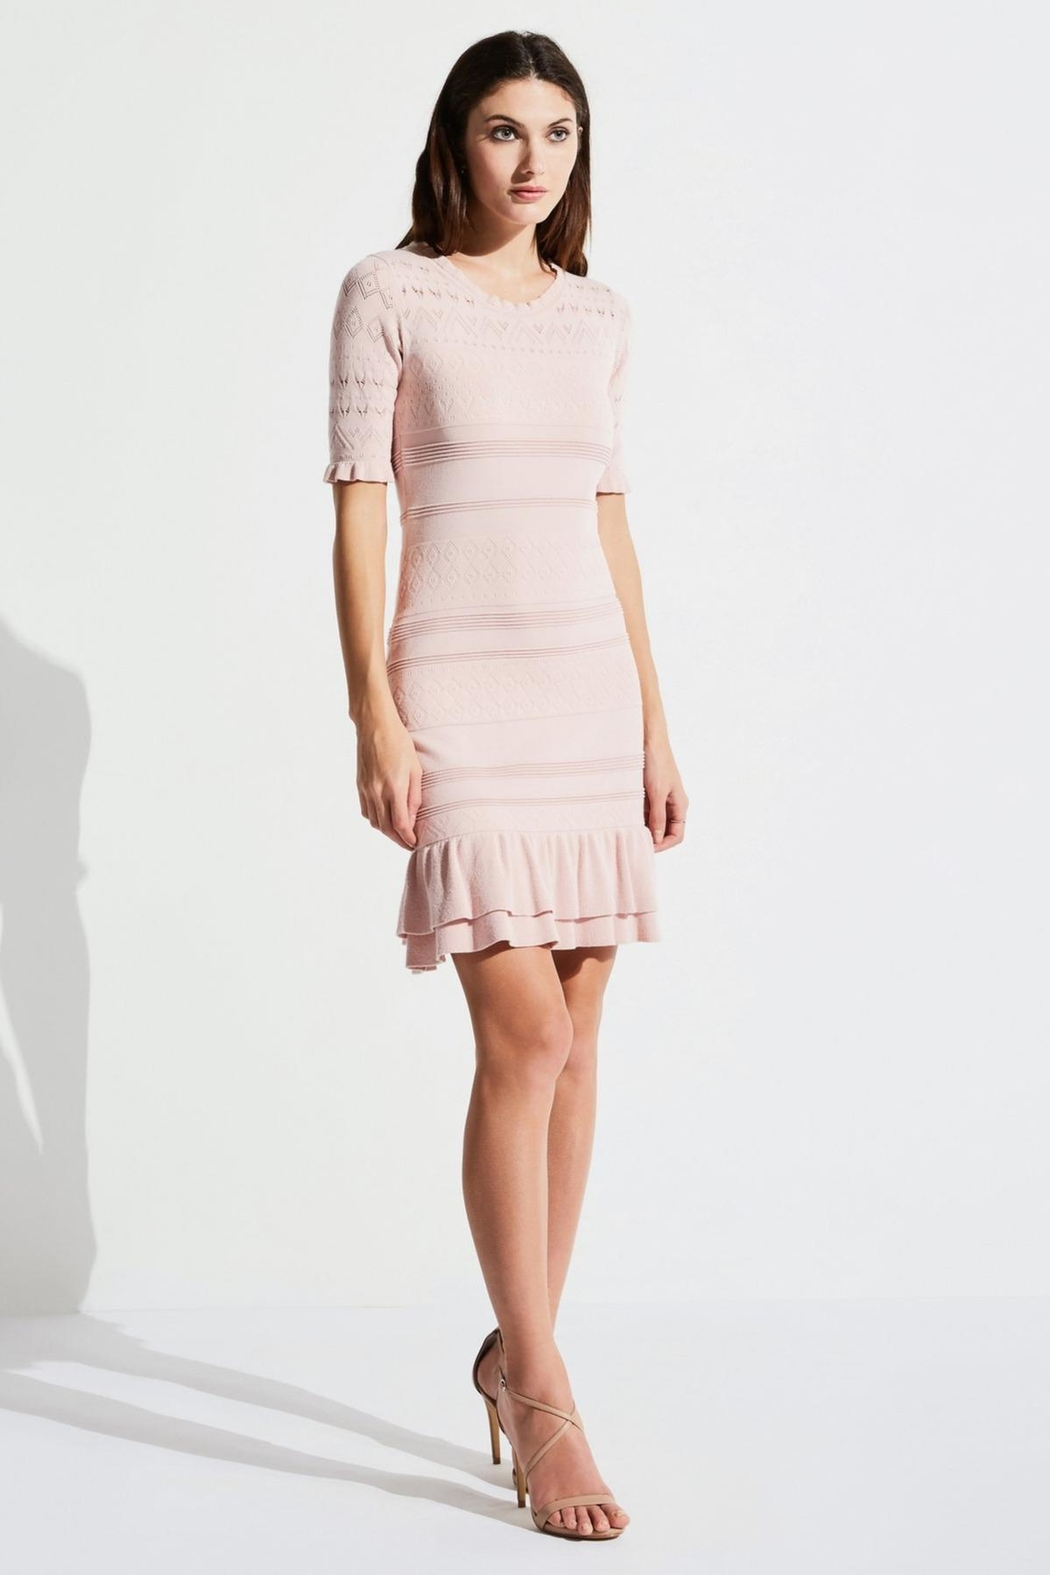 Bailey 44 Feminine Knit Dress - Main Image